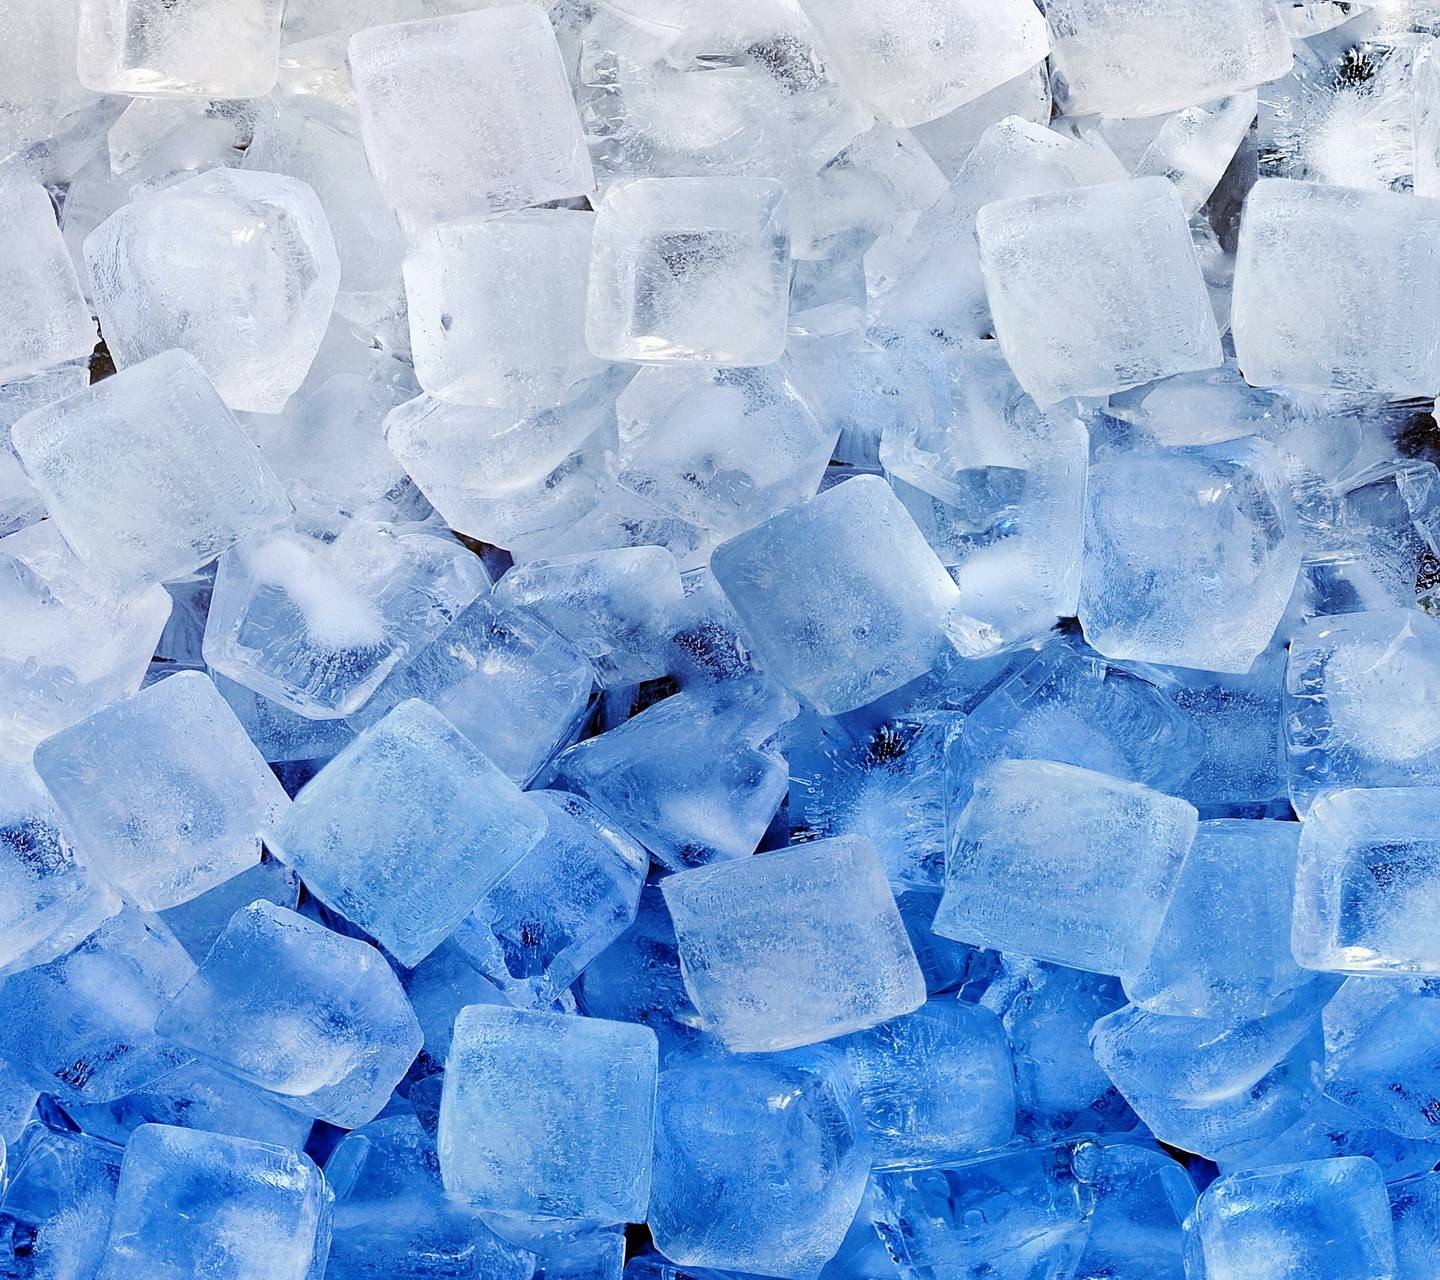 Ice Cubes Wallpaper By Marika F8 Free On Zedge